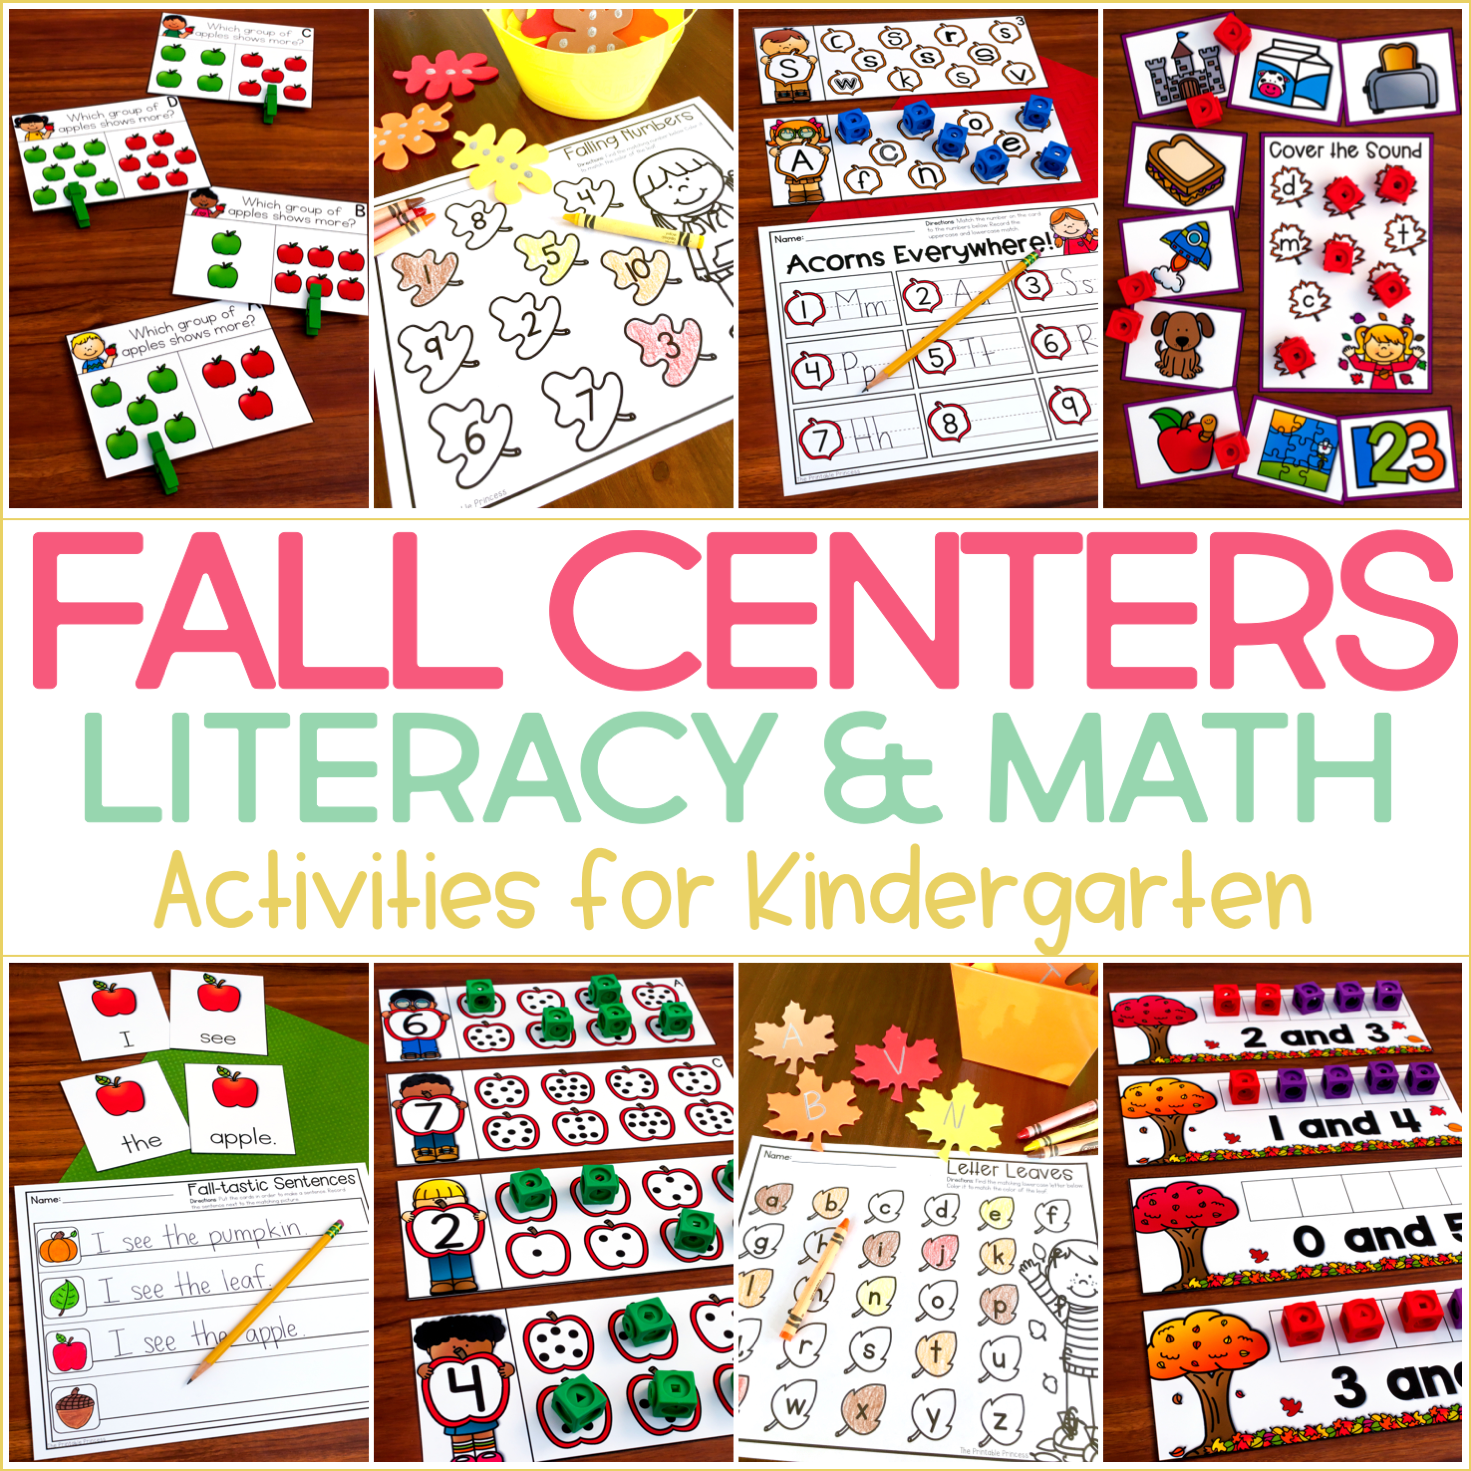 Easy Fall Centers for Kindergarten {Plus Some Fall Freebies}!